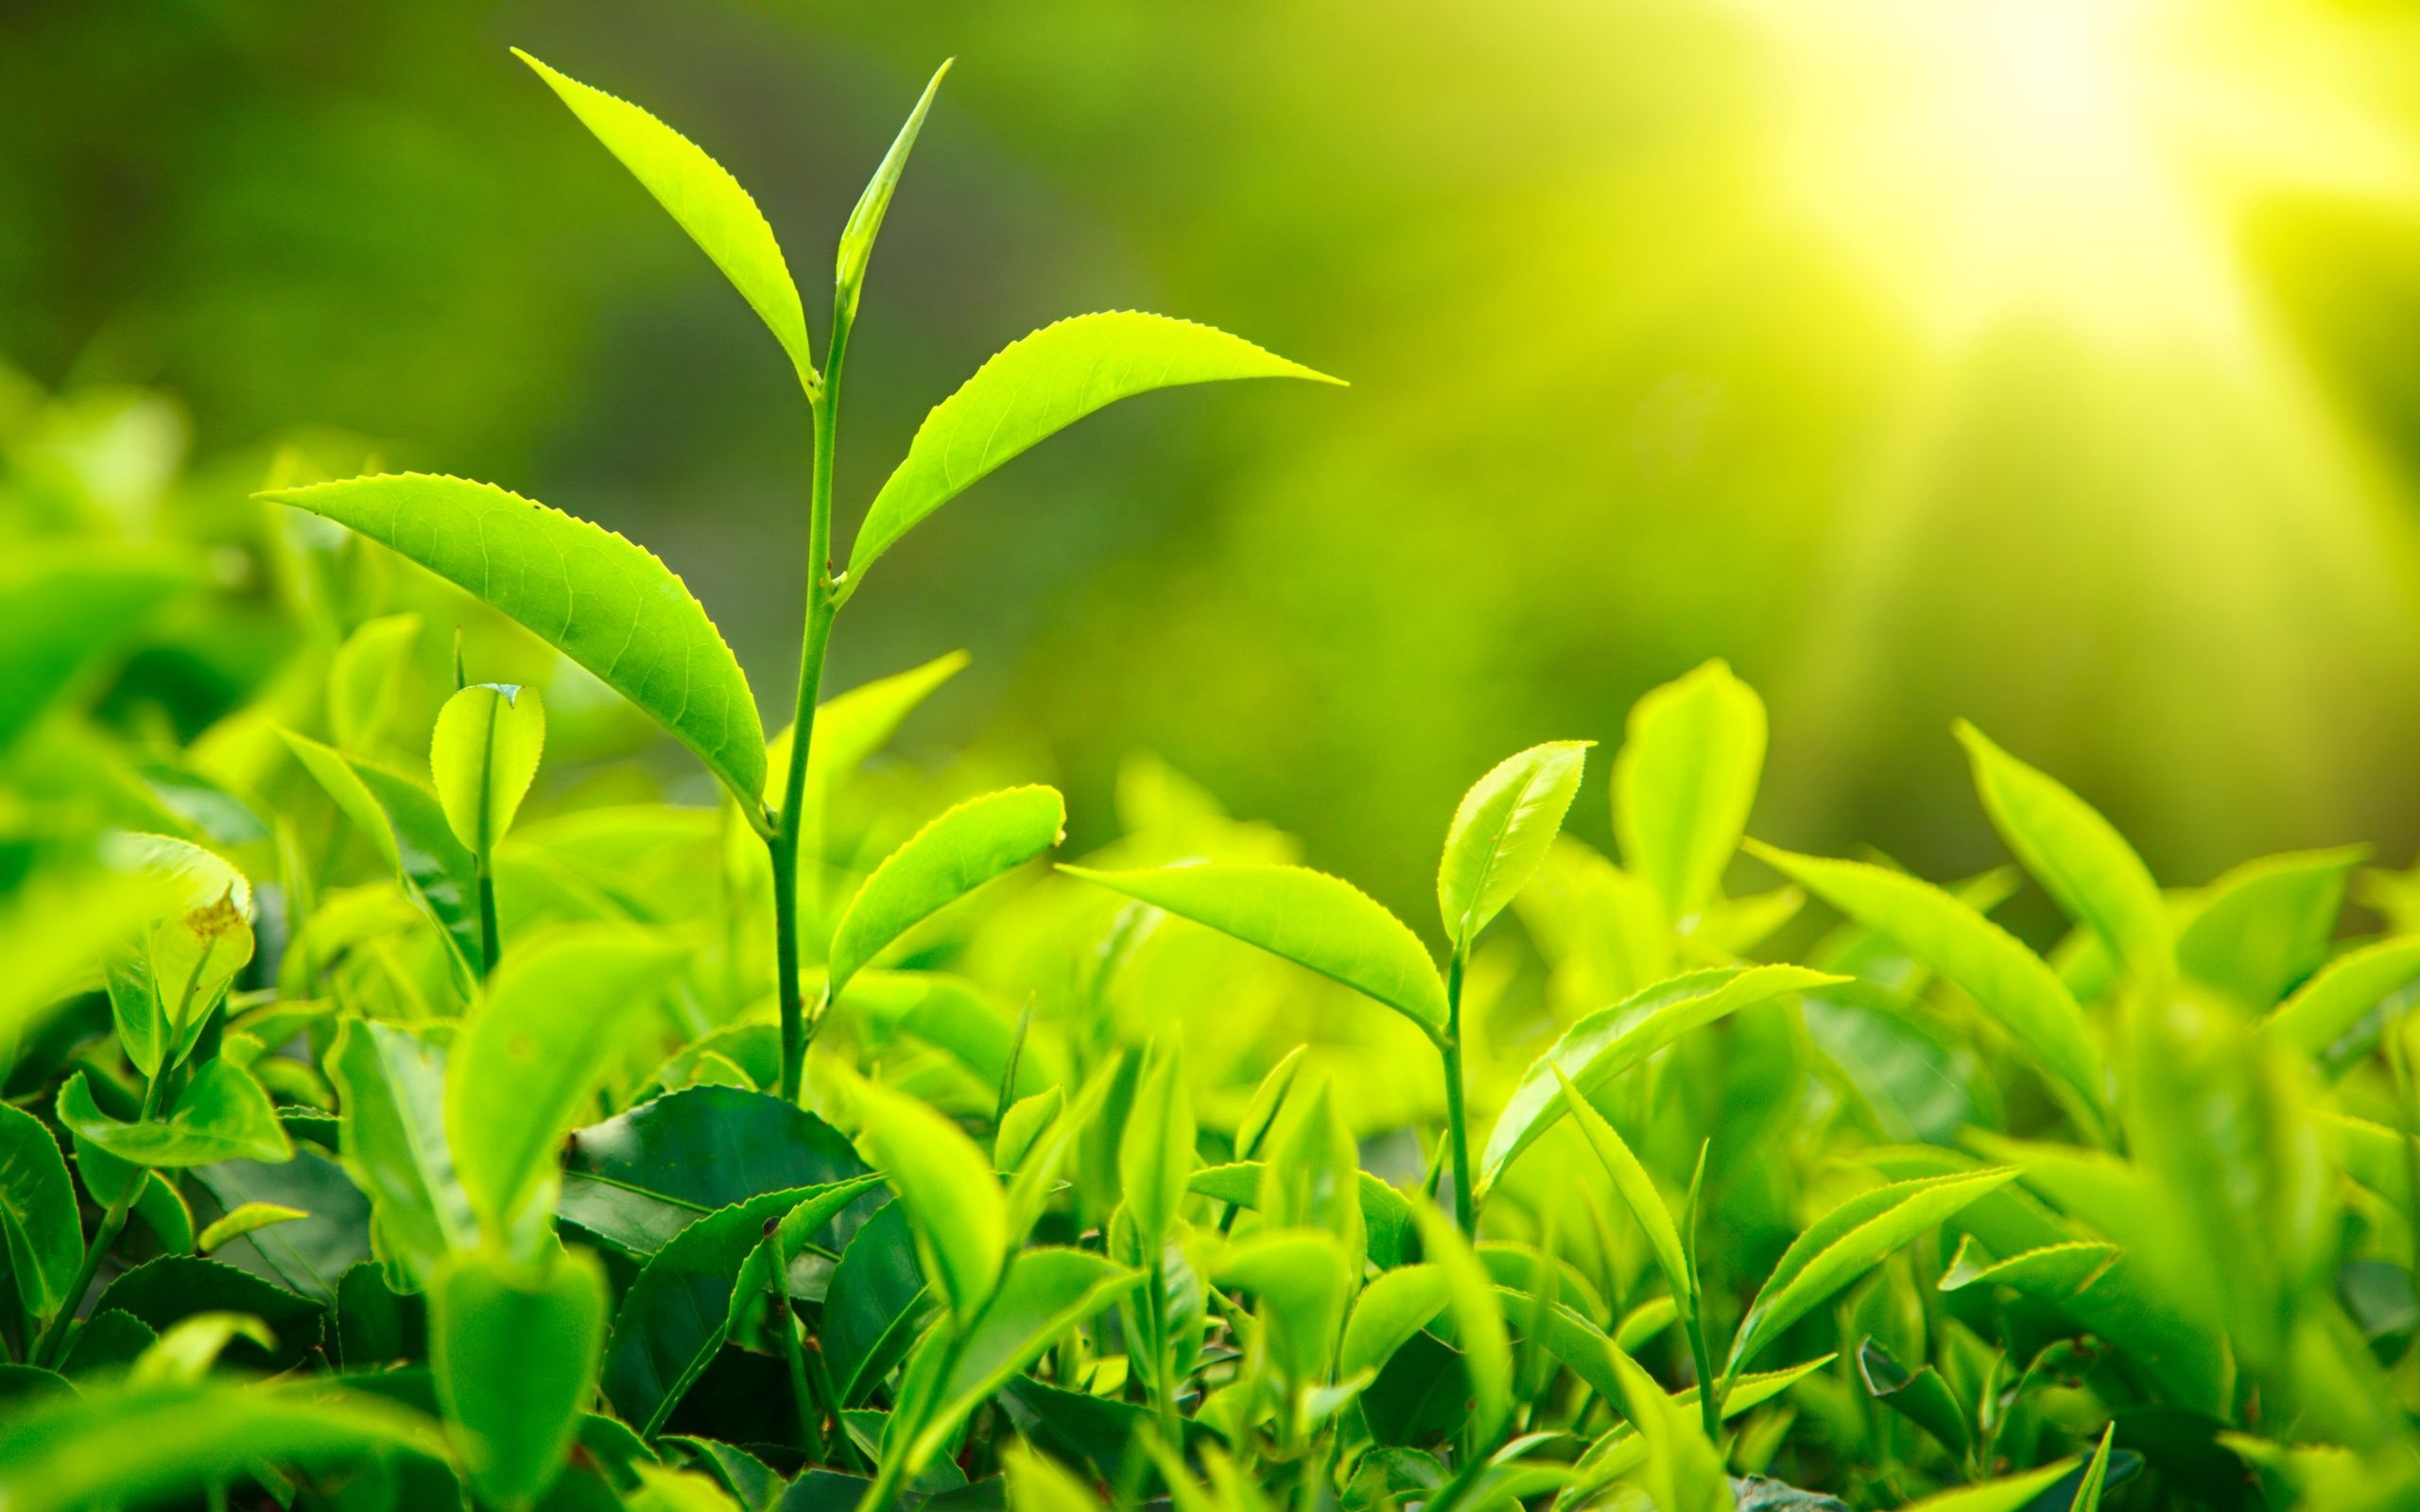 Green Tea Extracts for Effective Weight Loss - Top 5 Green Tea Products